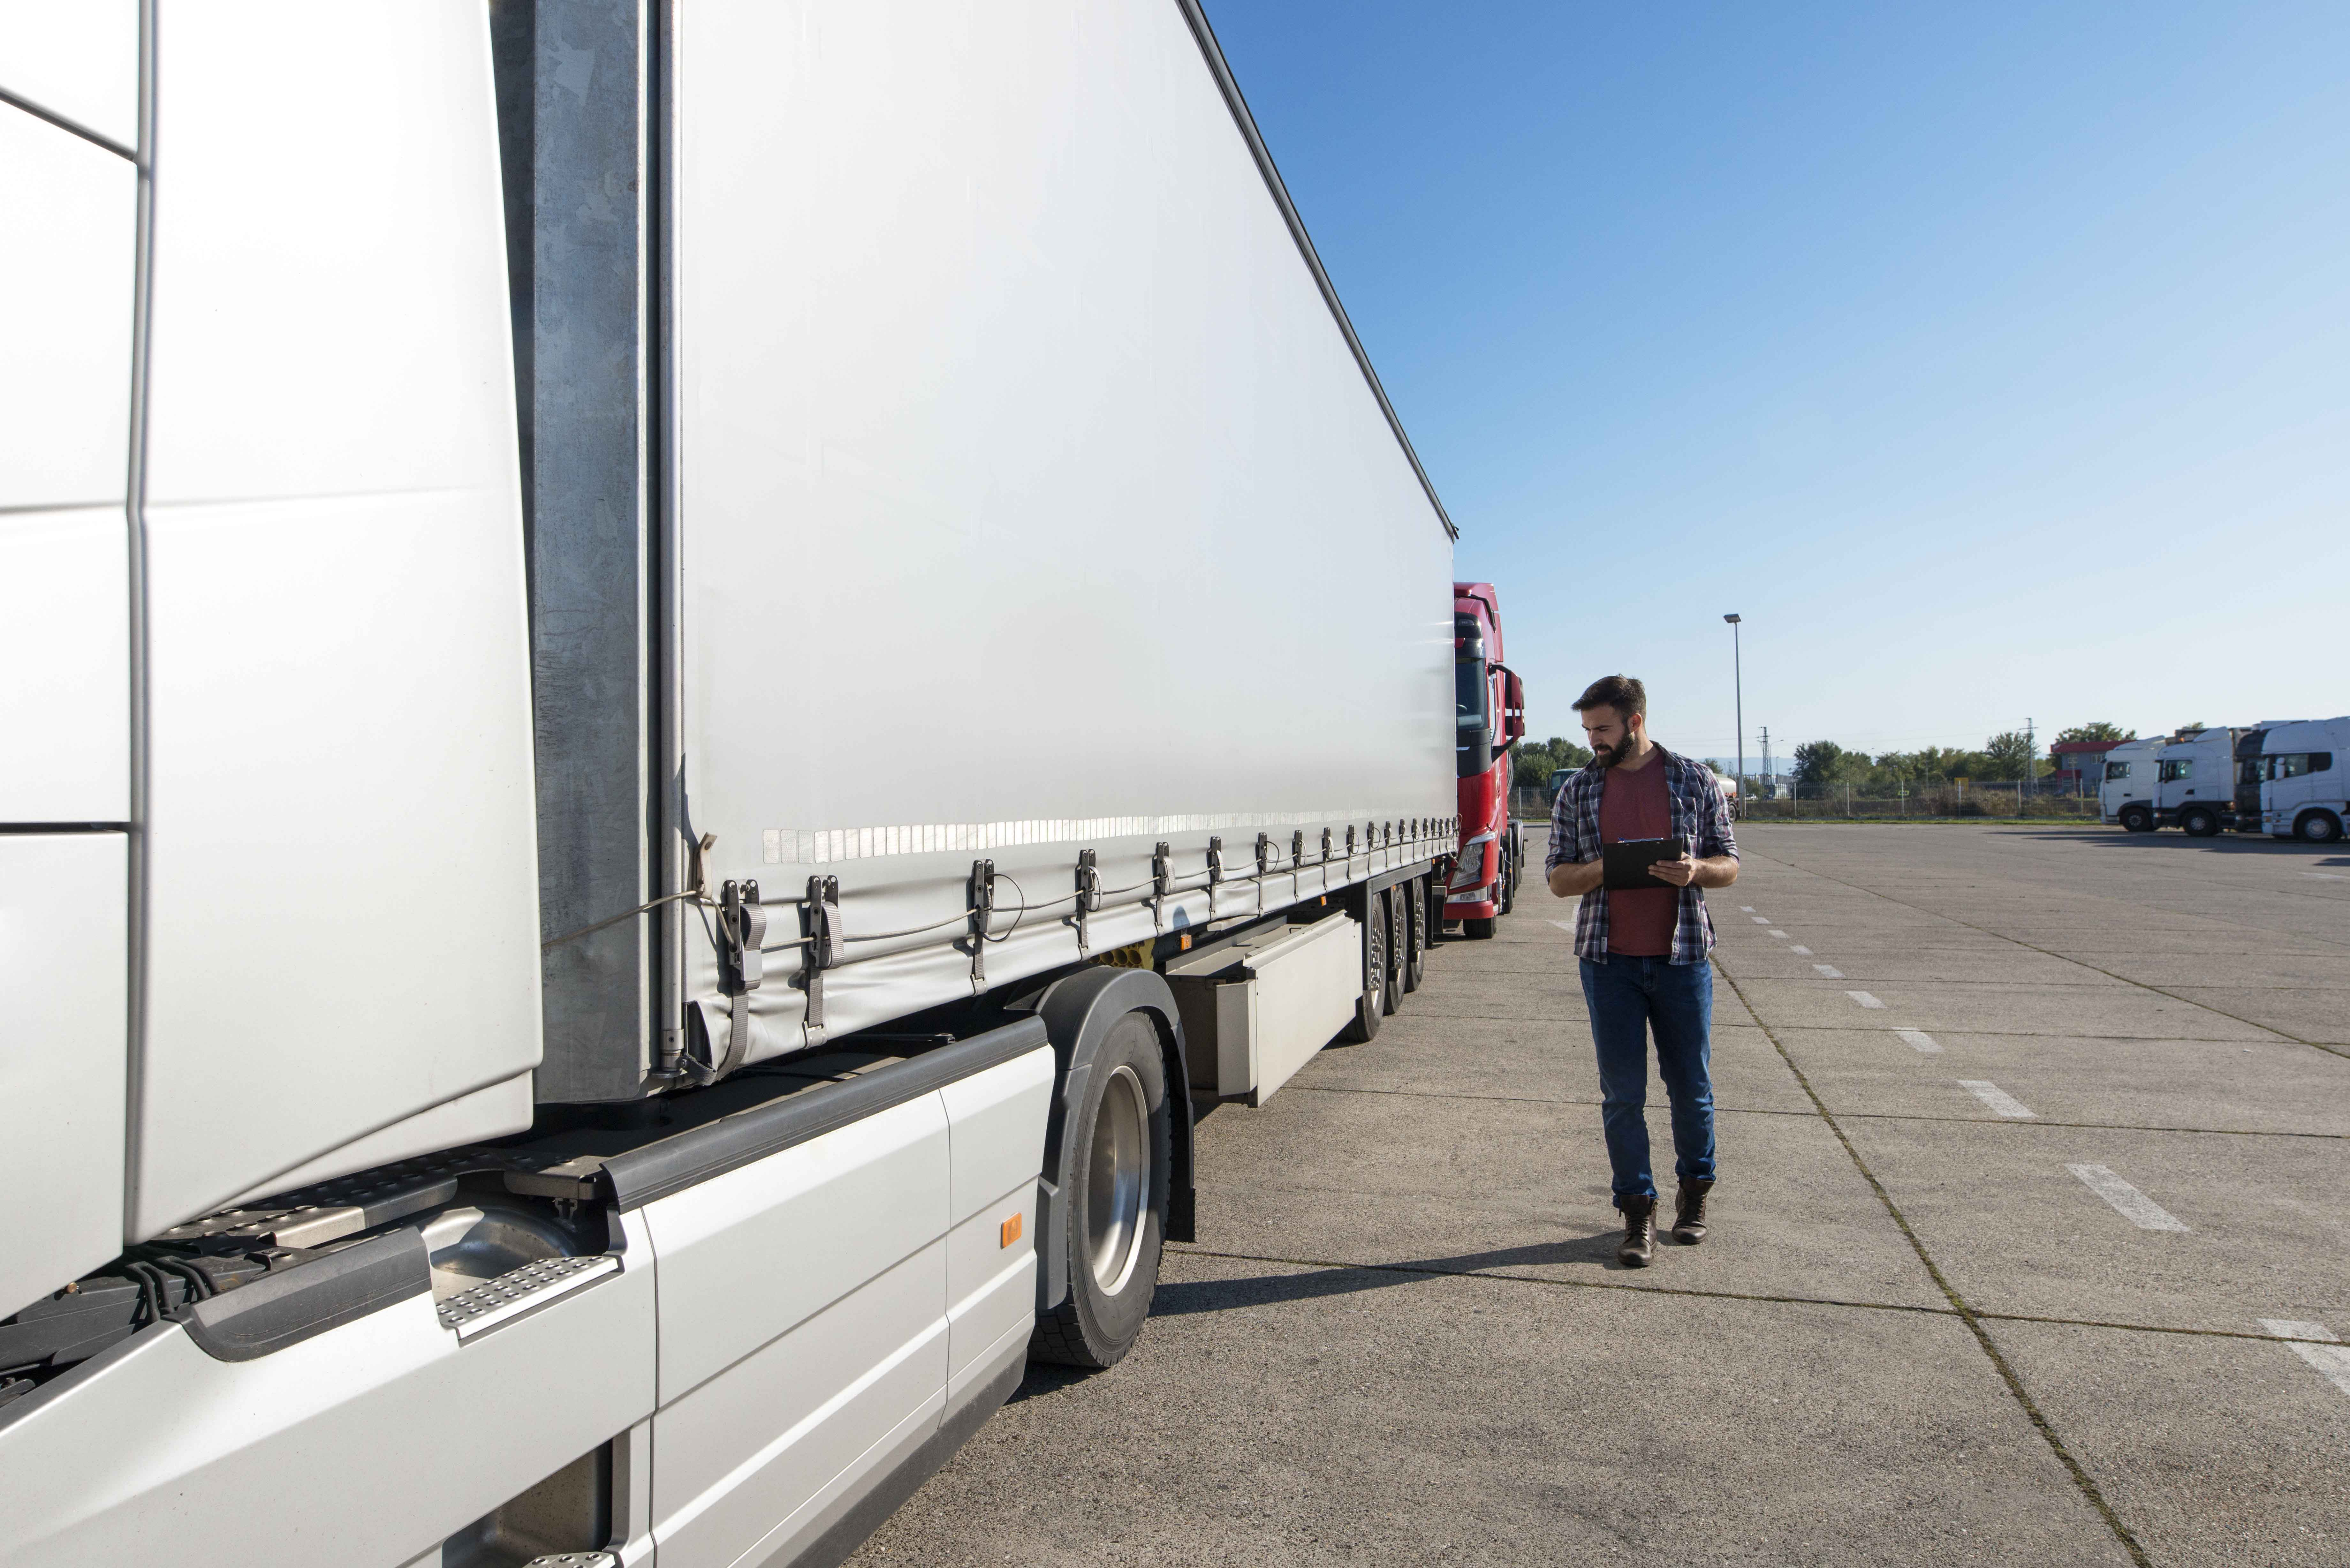 Truck driver inspecting vehicle, trailer and tires before driving.